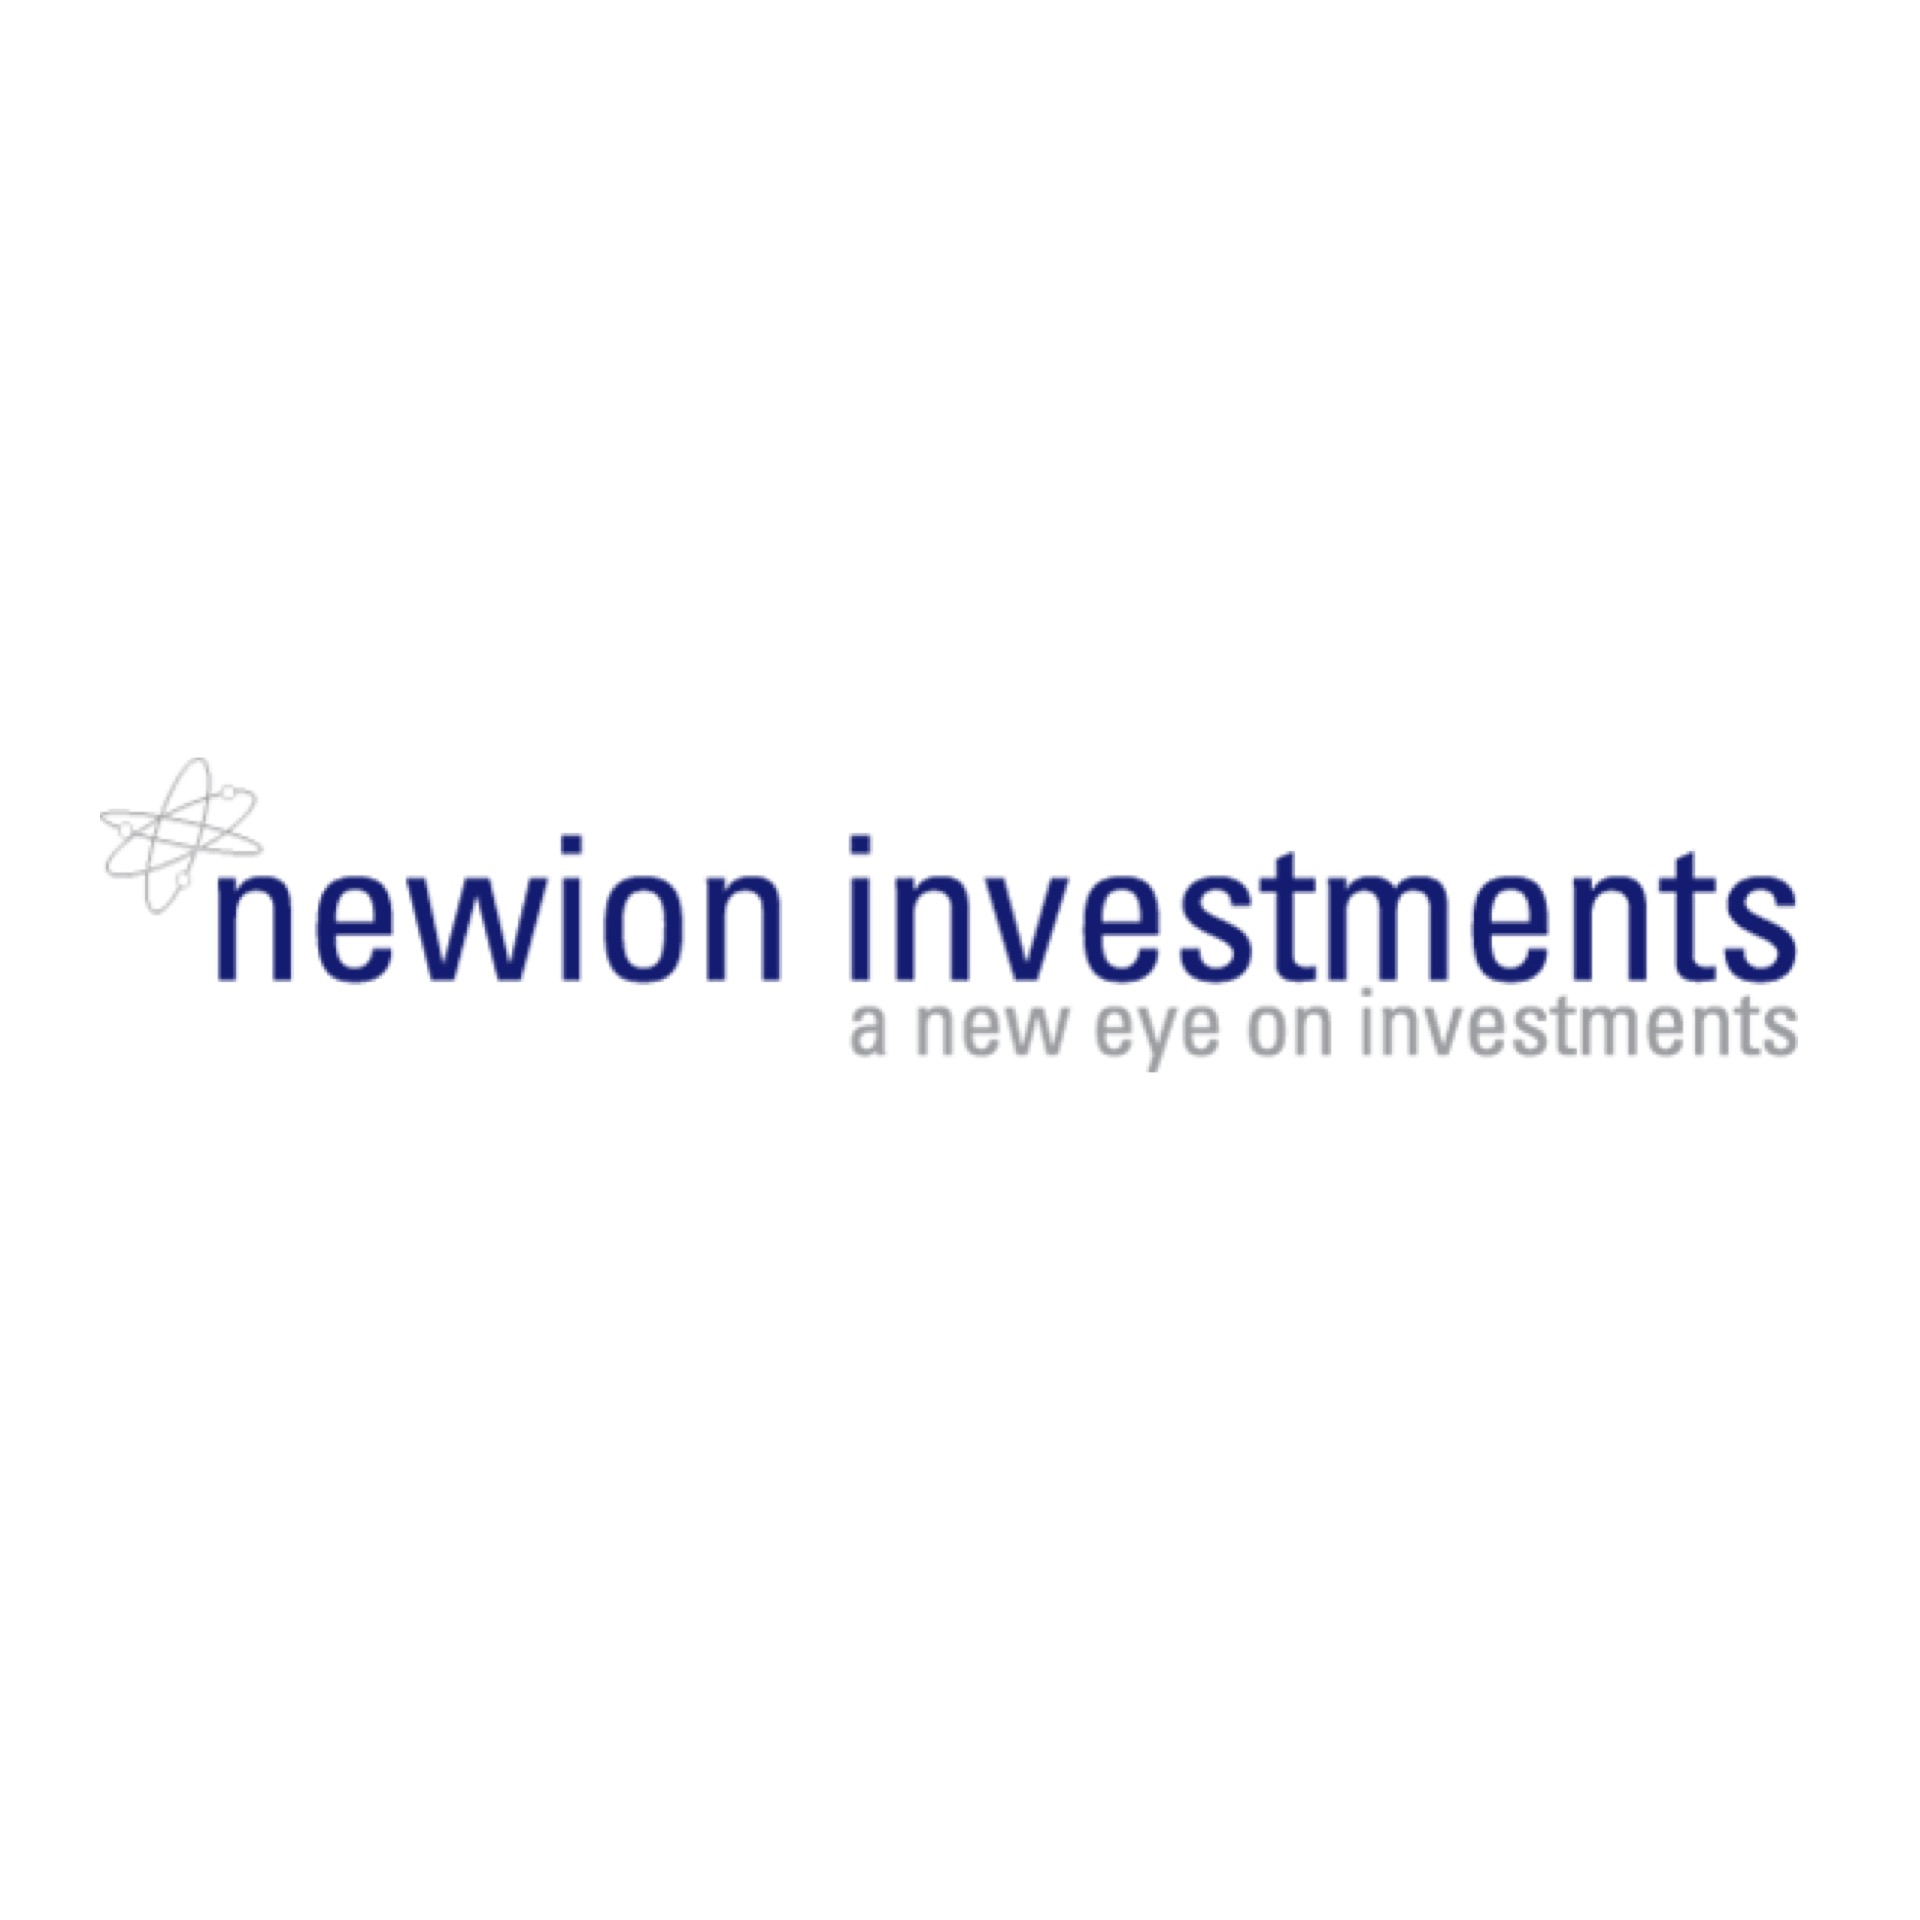 Newion Investments